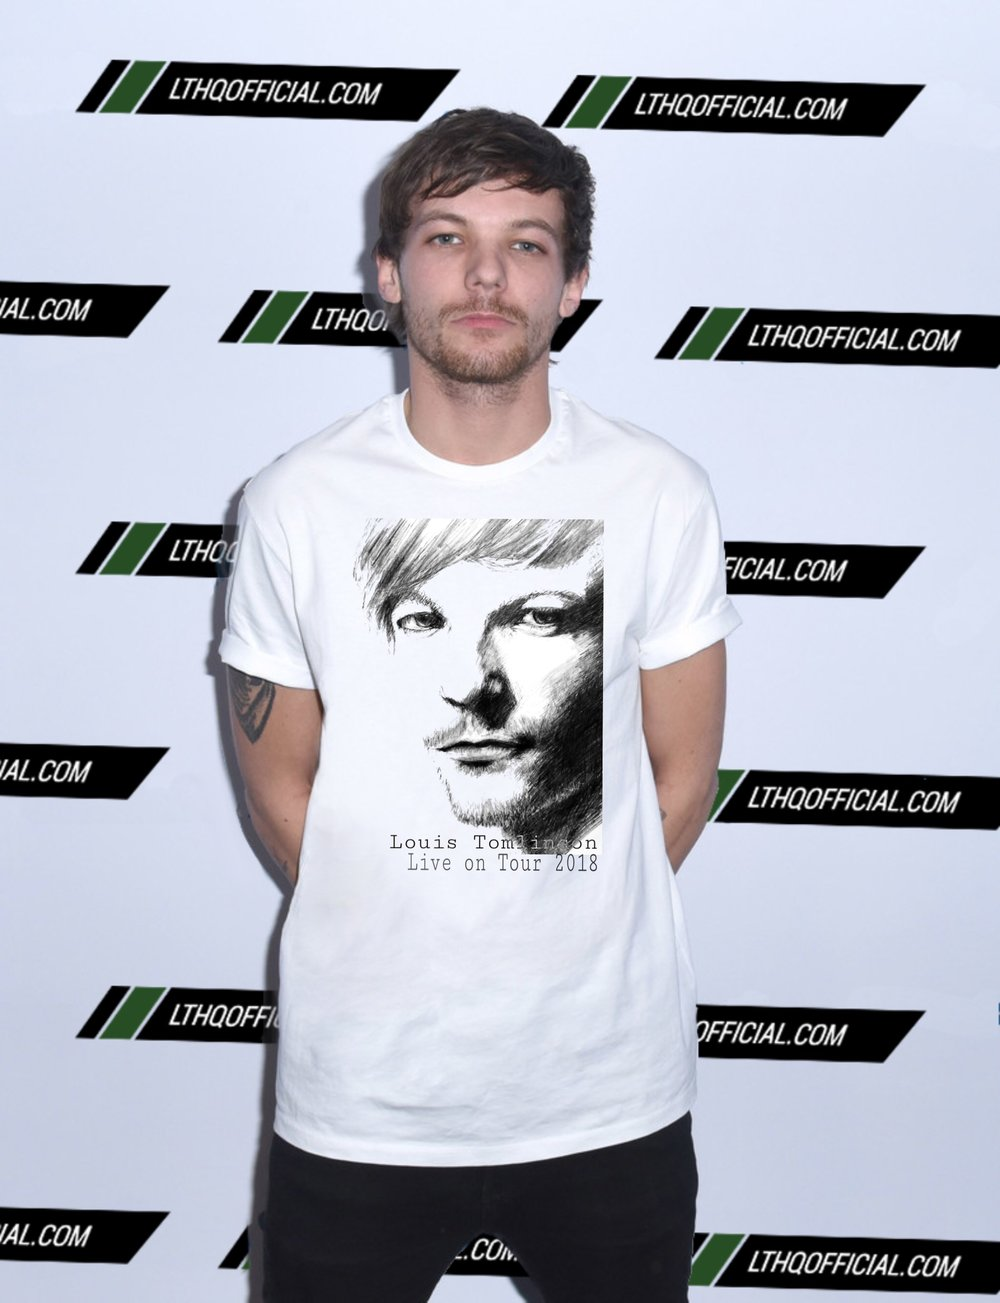 27. Louis on Tour: Whiteknightonasteed